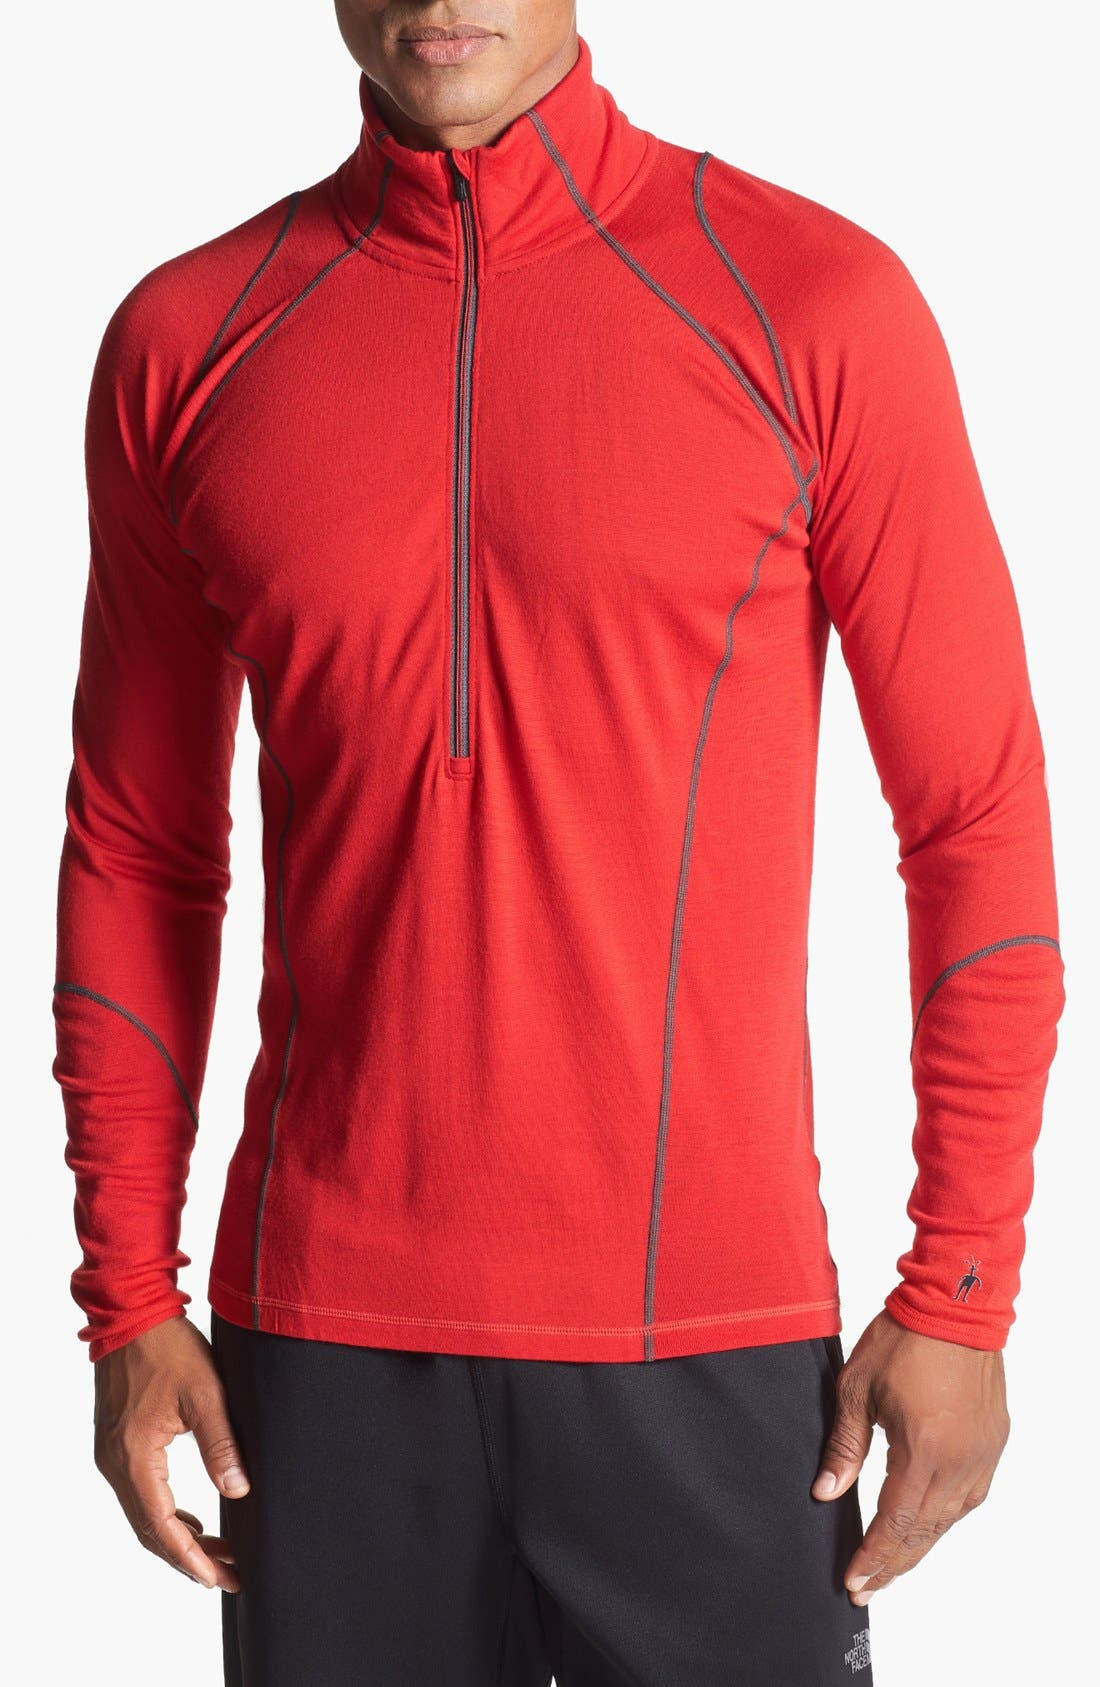 Alternate Image 1 Selected - Smartwool Lightweight Long Sleeve Performance Top